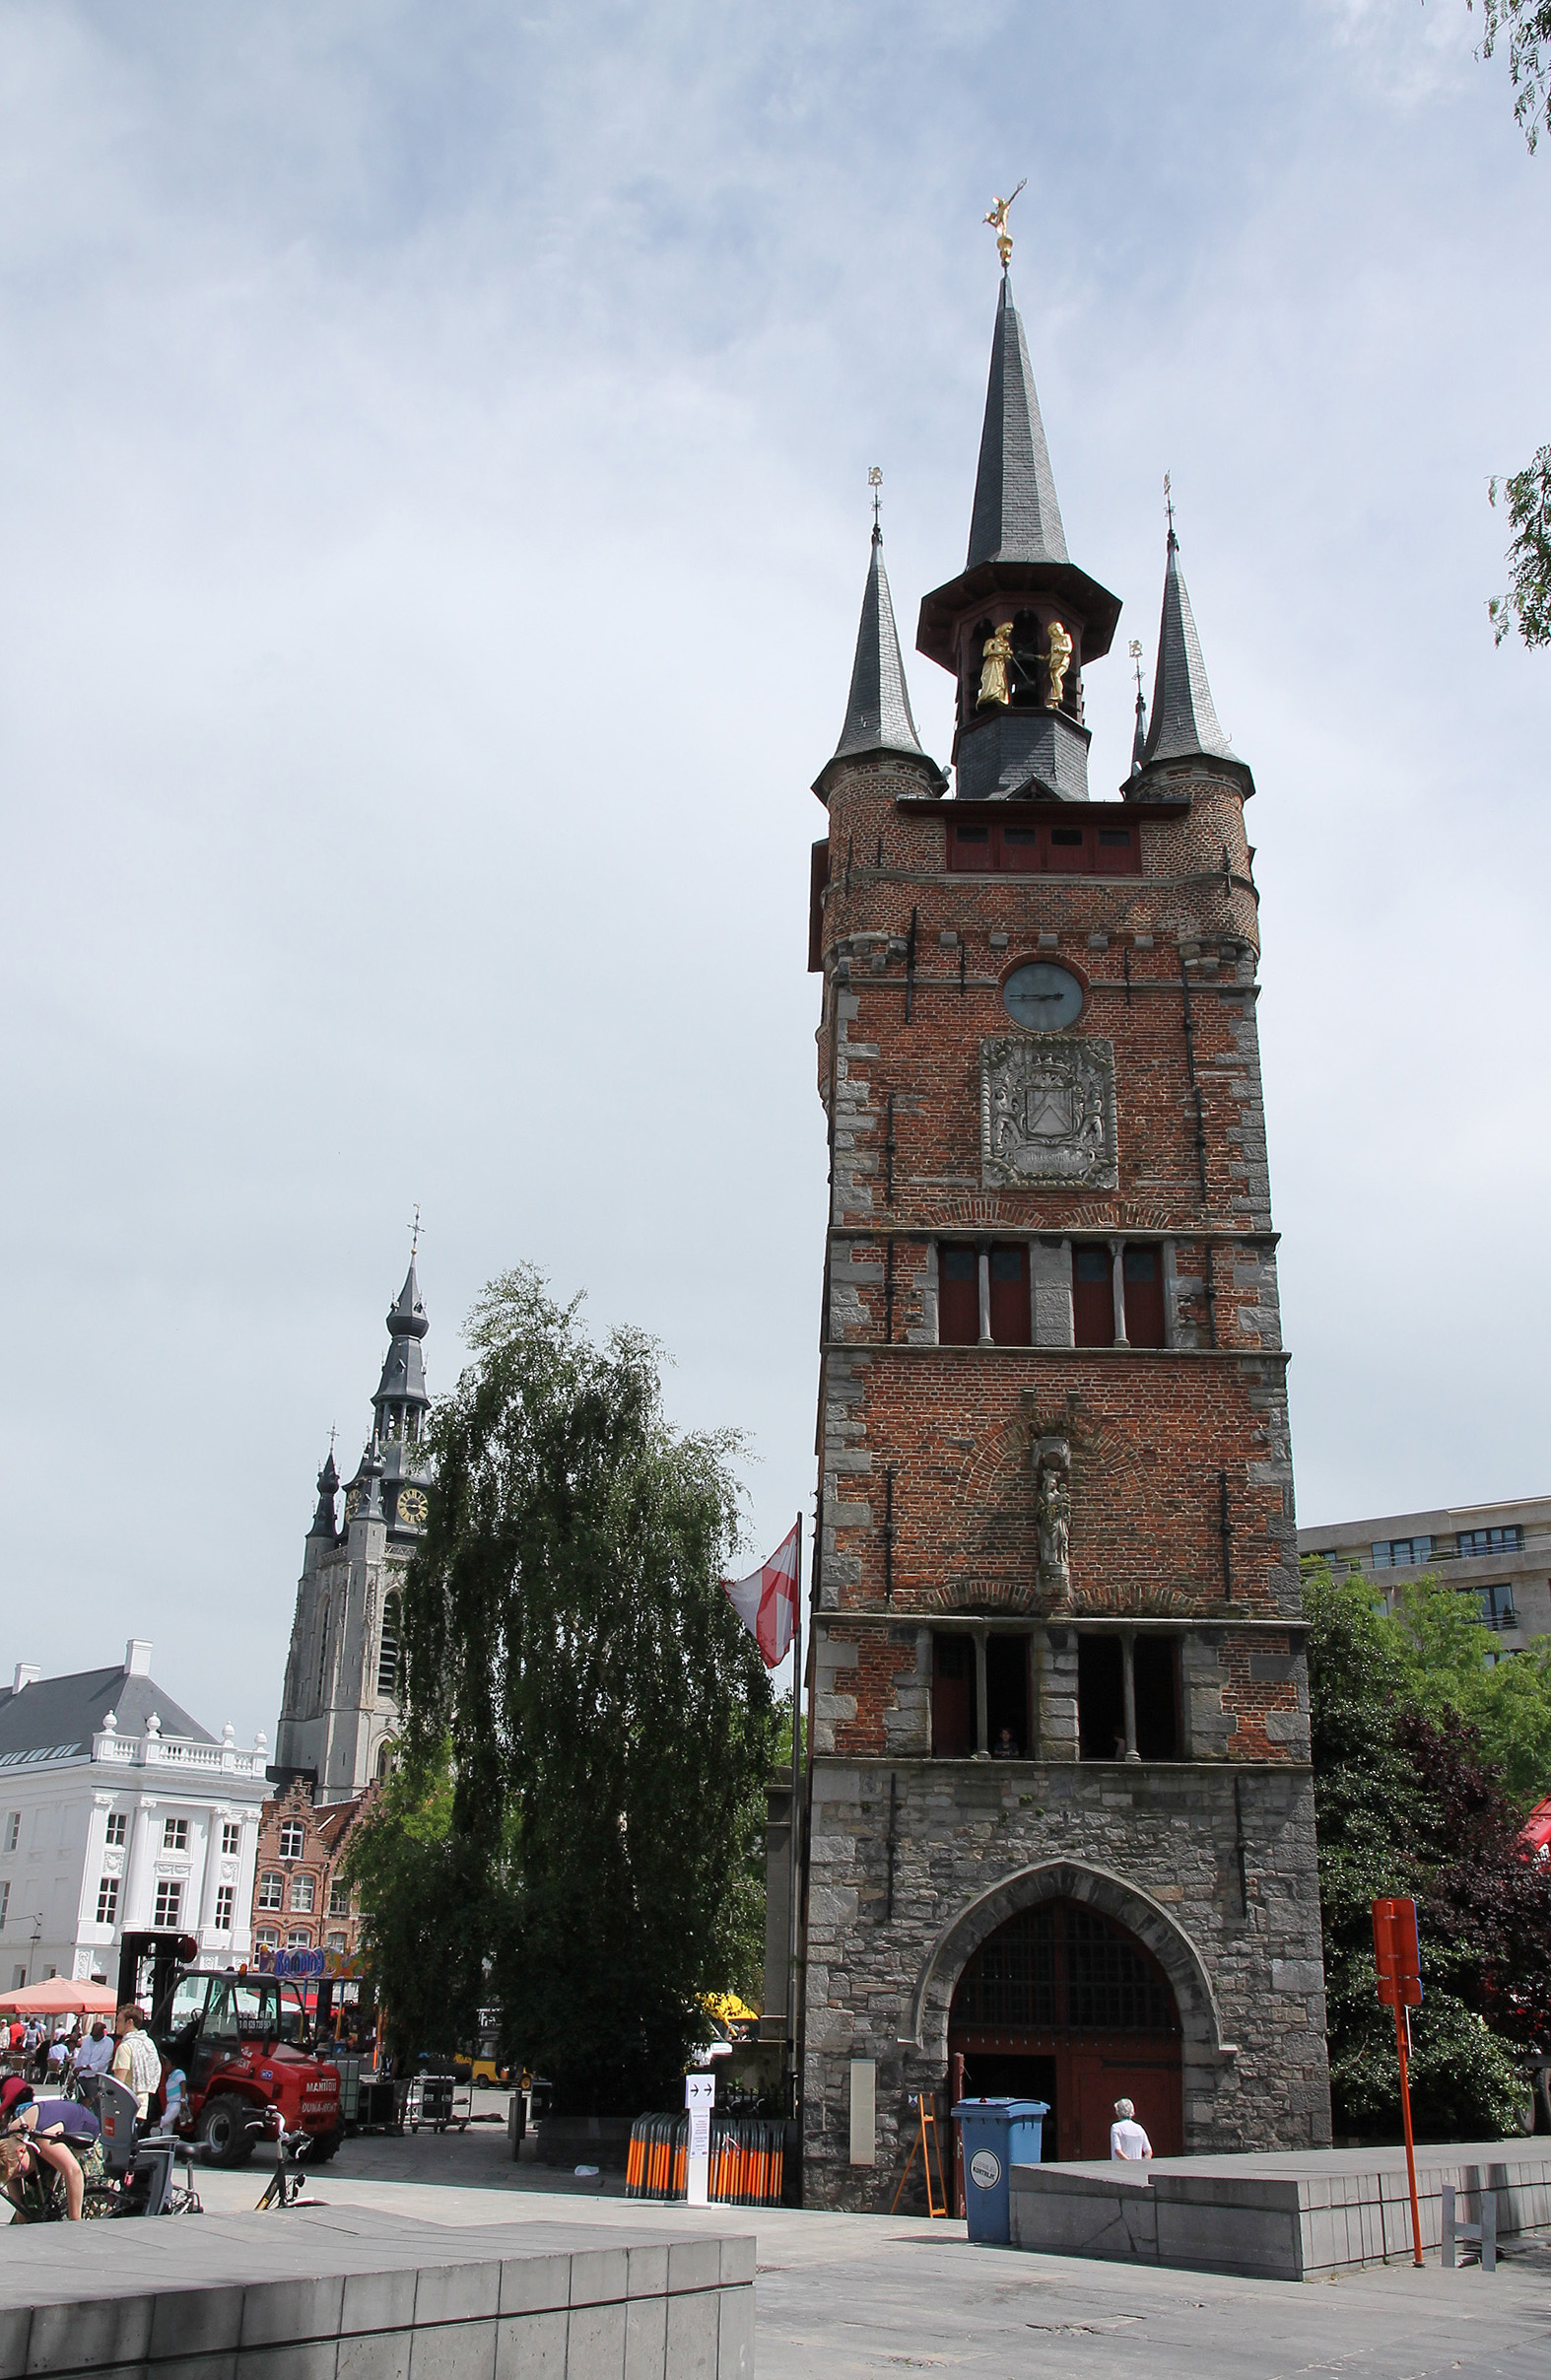 The belfry of Kortrijk.